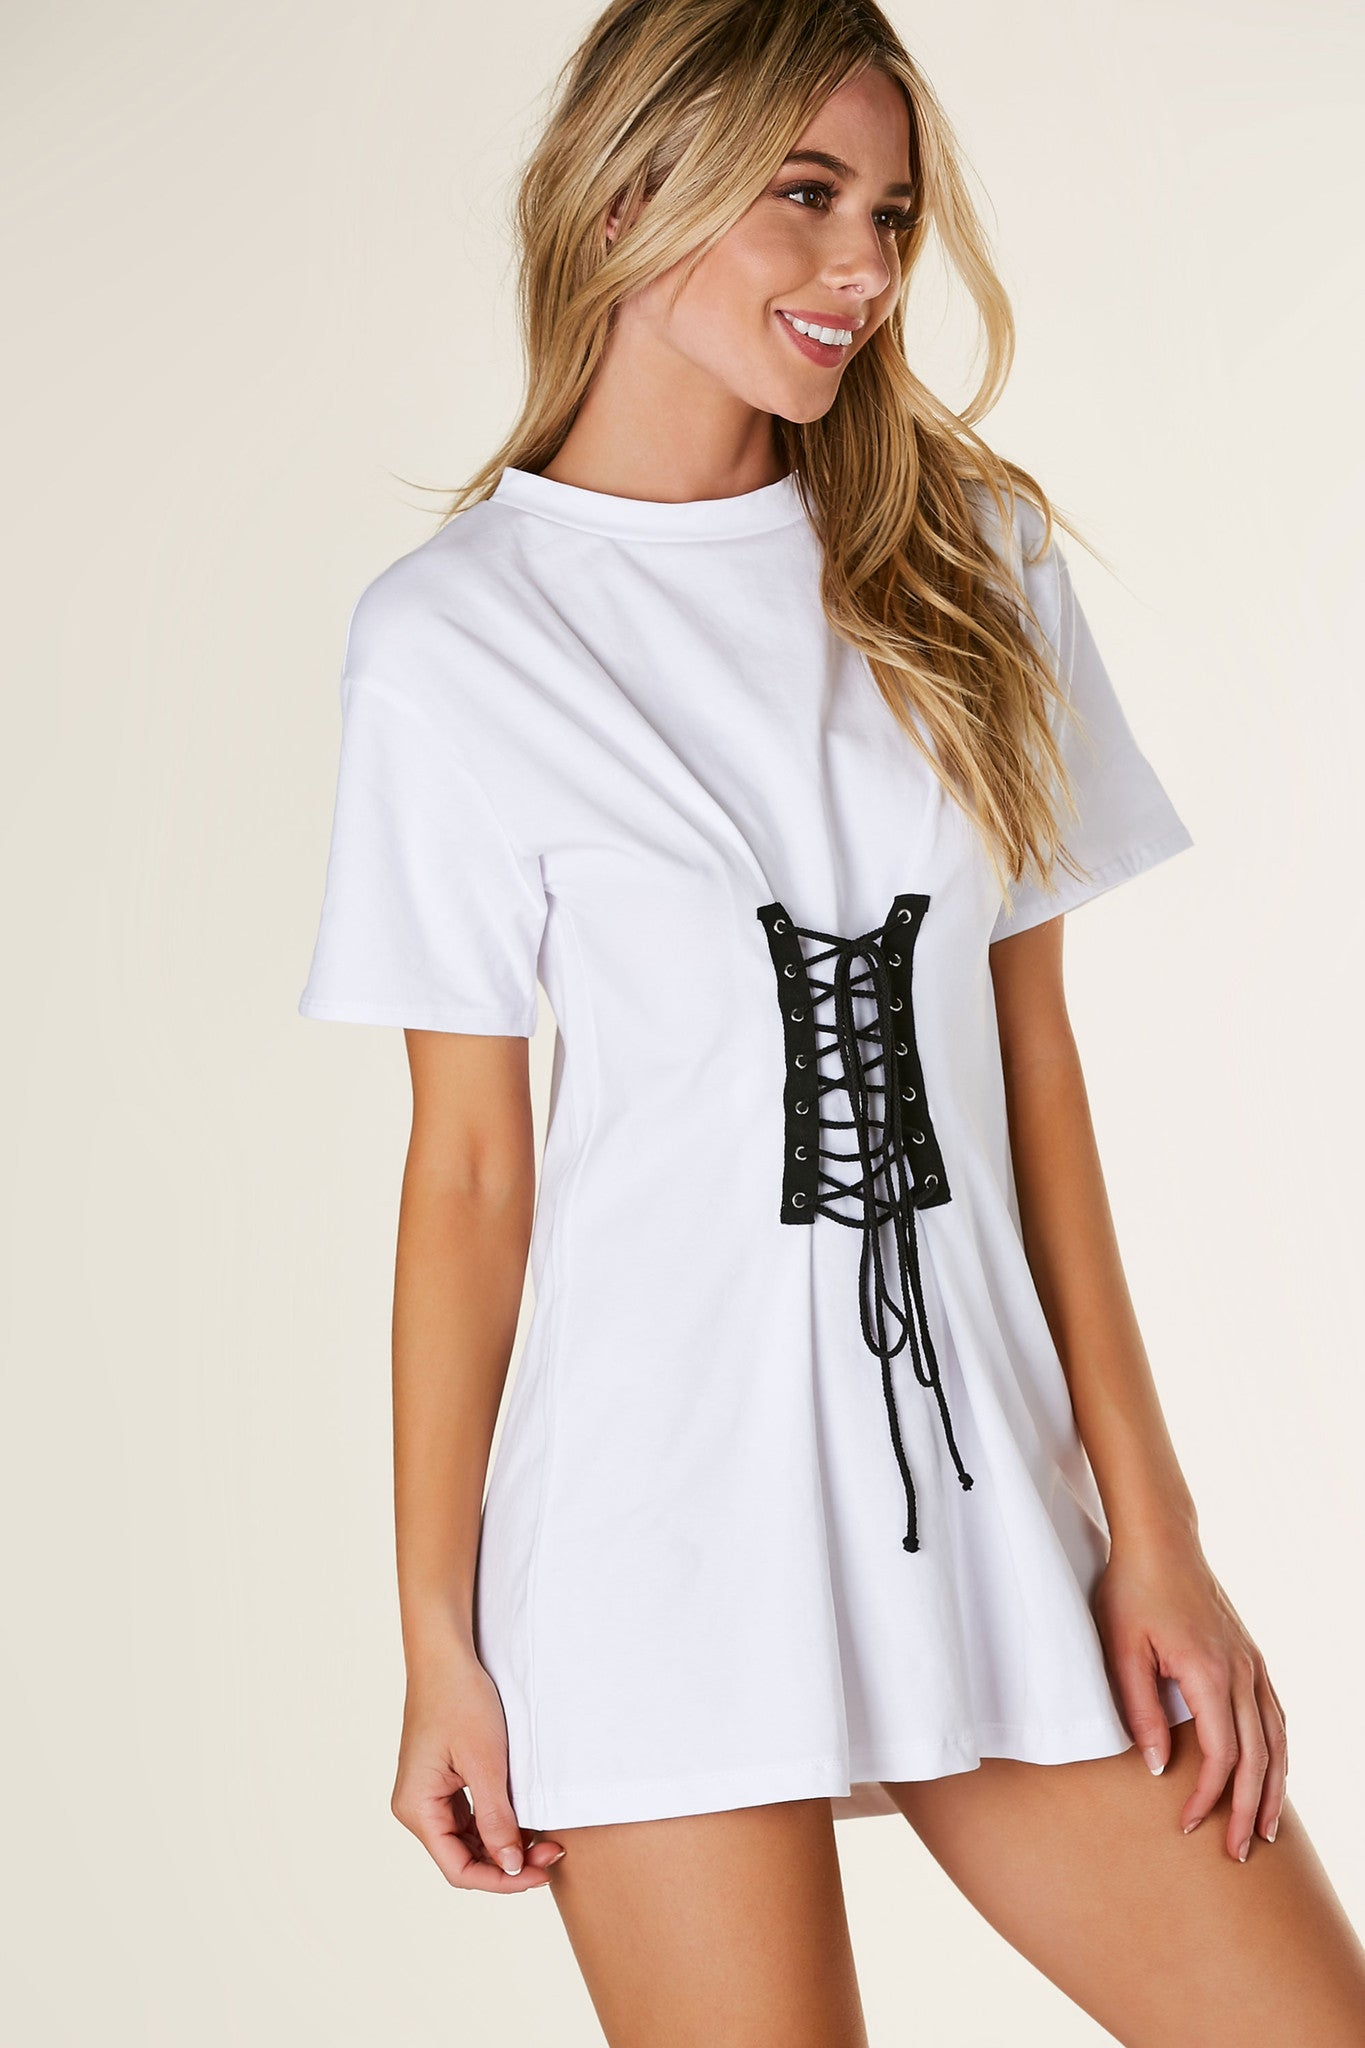 Basic crew neck T-shirt dress with oversized fit and trendy lace up design at center.